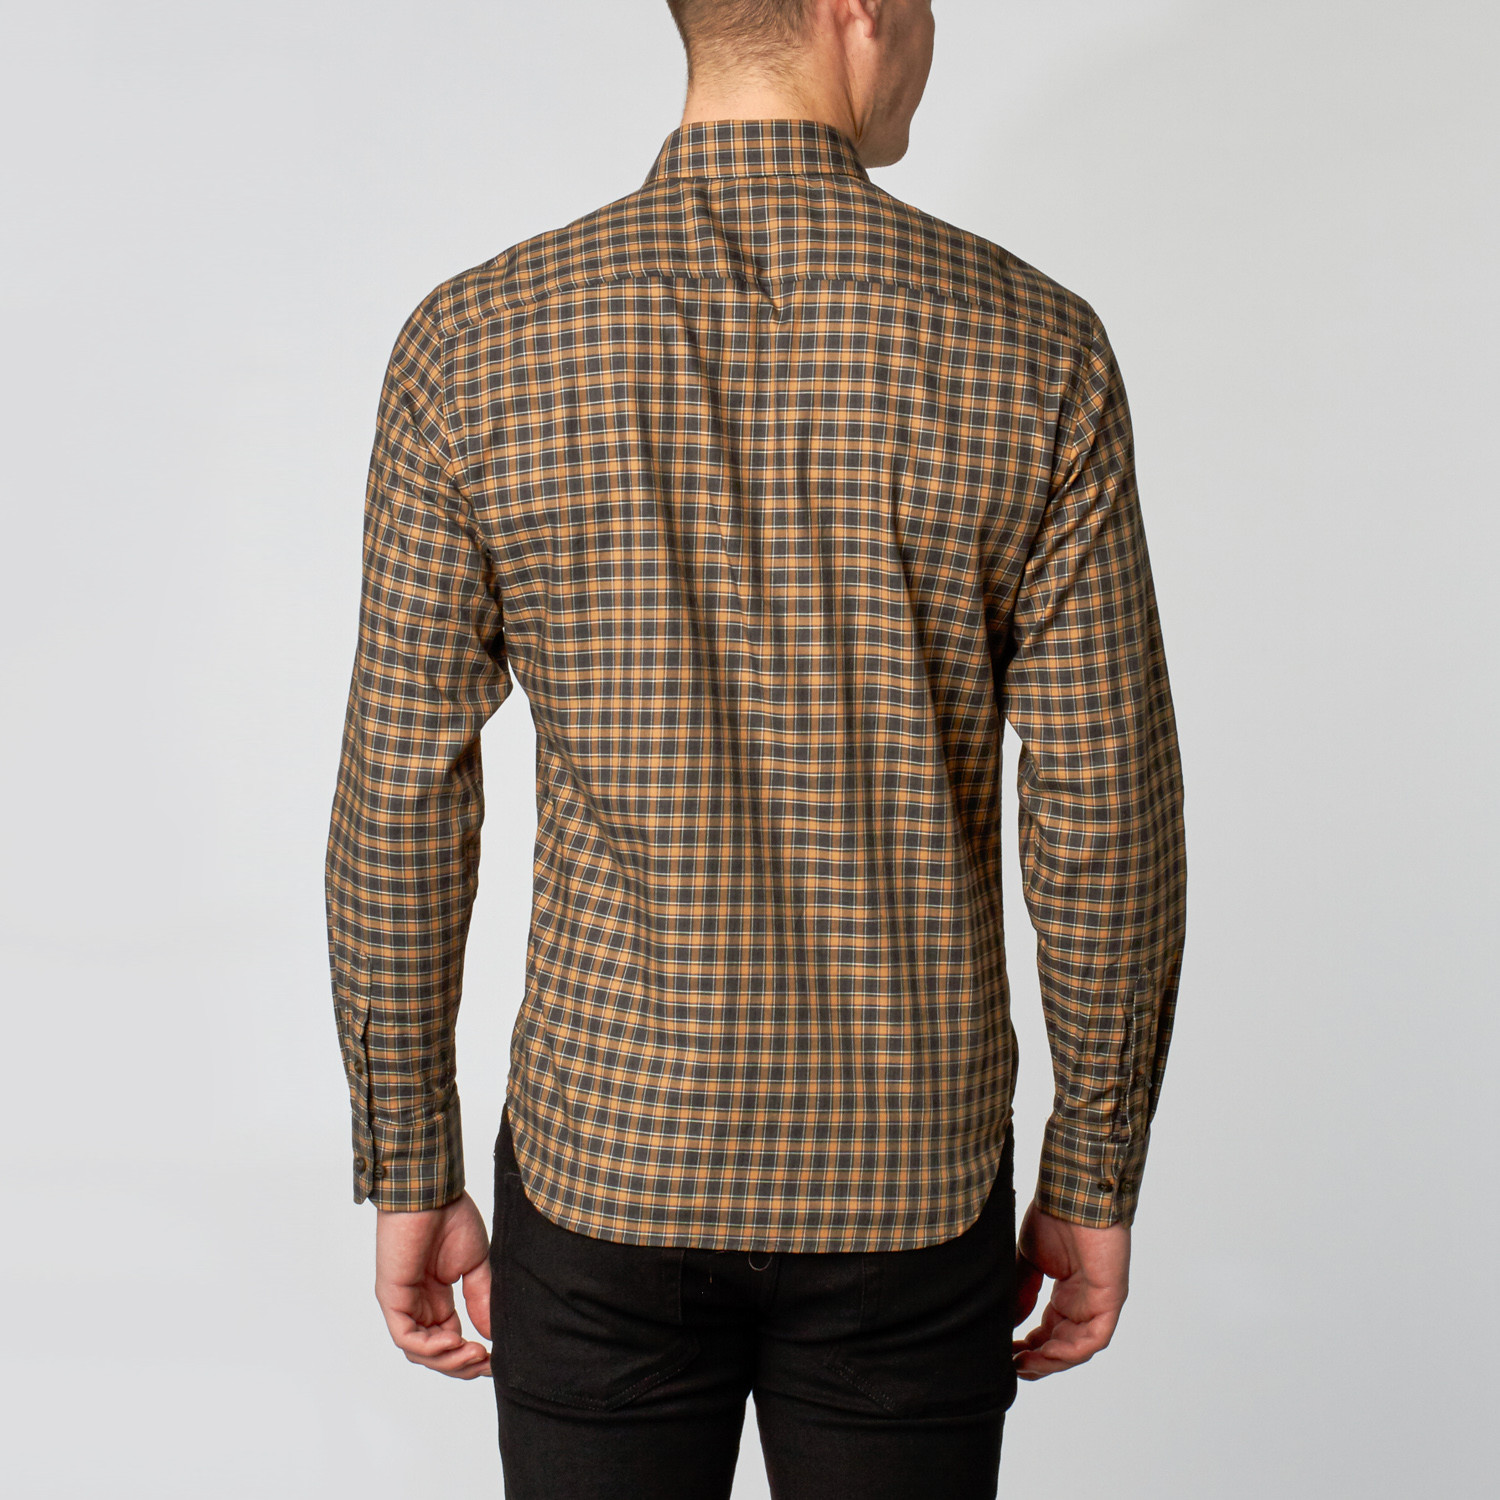 Button- Collar Dress Shirt Saddle Charcoal Plaid